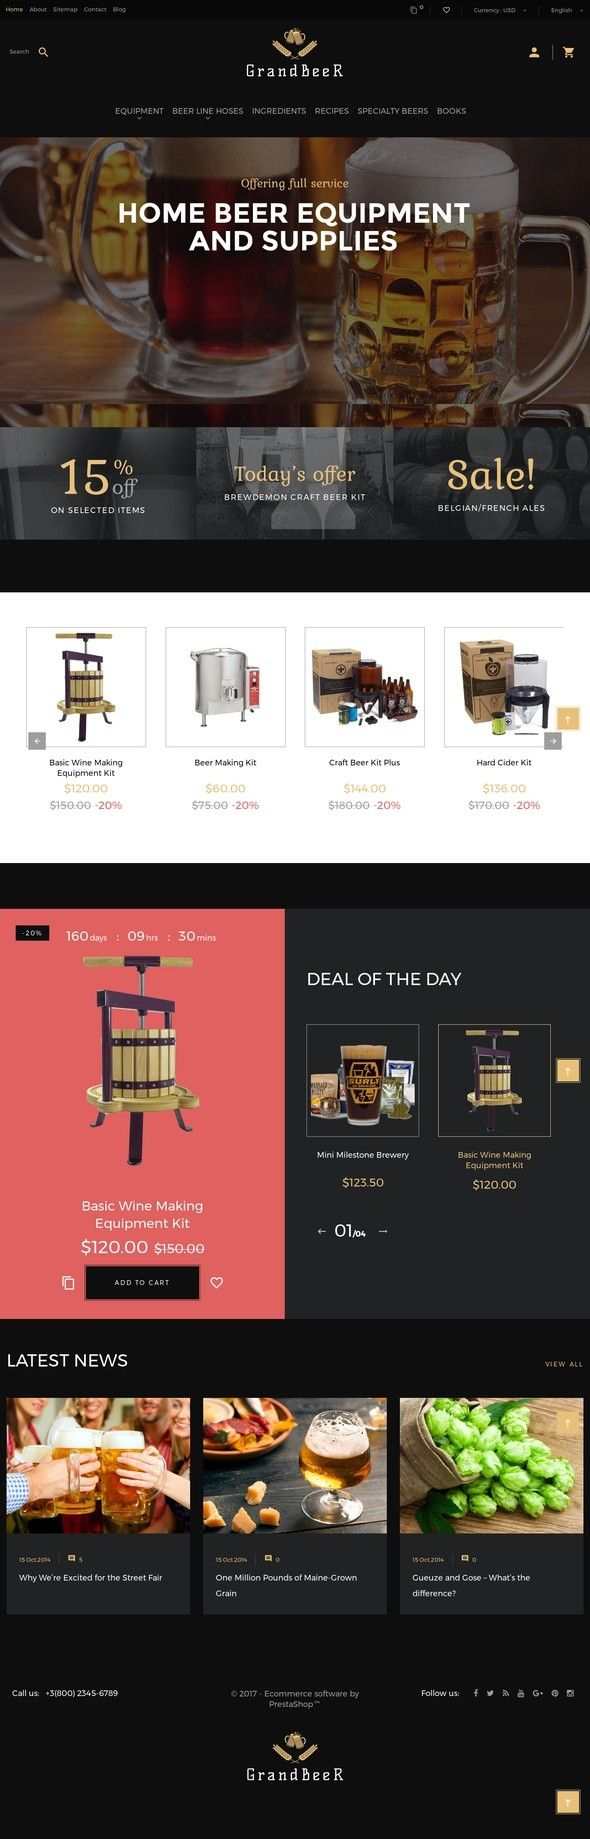 GrandBeer PrestaShop Theme E-commerce Templates, PrestaShop Themes, Food & Restaurant, Brewery Templates GrandBeer is a Brewery PrestaShop Theme constructed as an excellent solution for homebrew and brewery supplies online stores. The theme's dominating colors make the customers dream about a glass ...